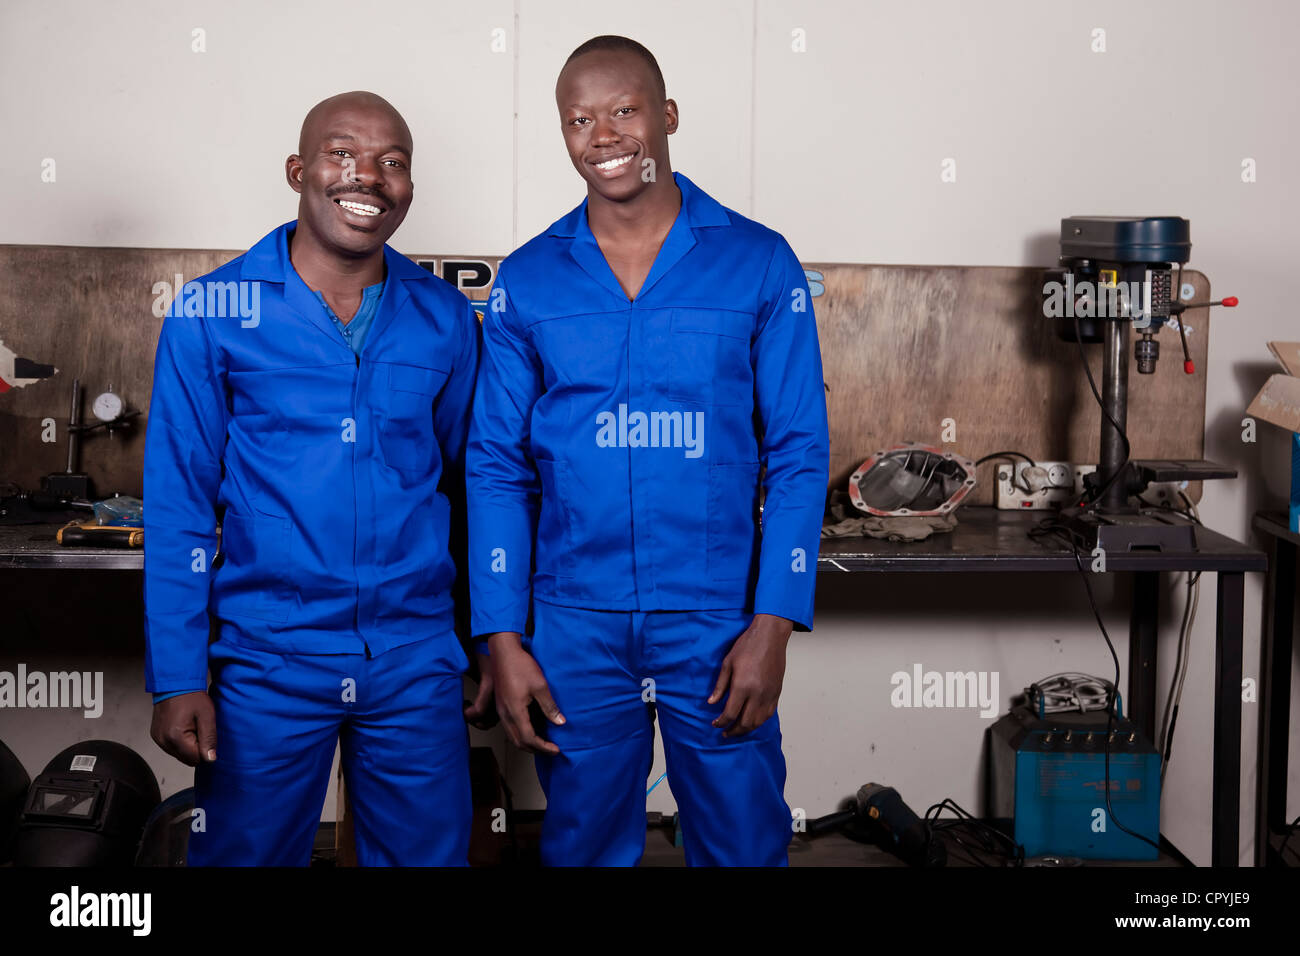 Two African mechanics standing in a workshop smiling at the camera - Stock Image